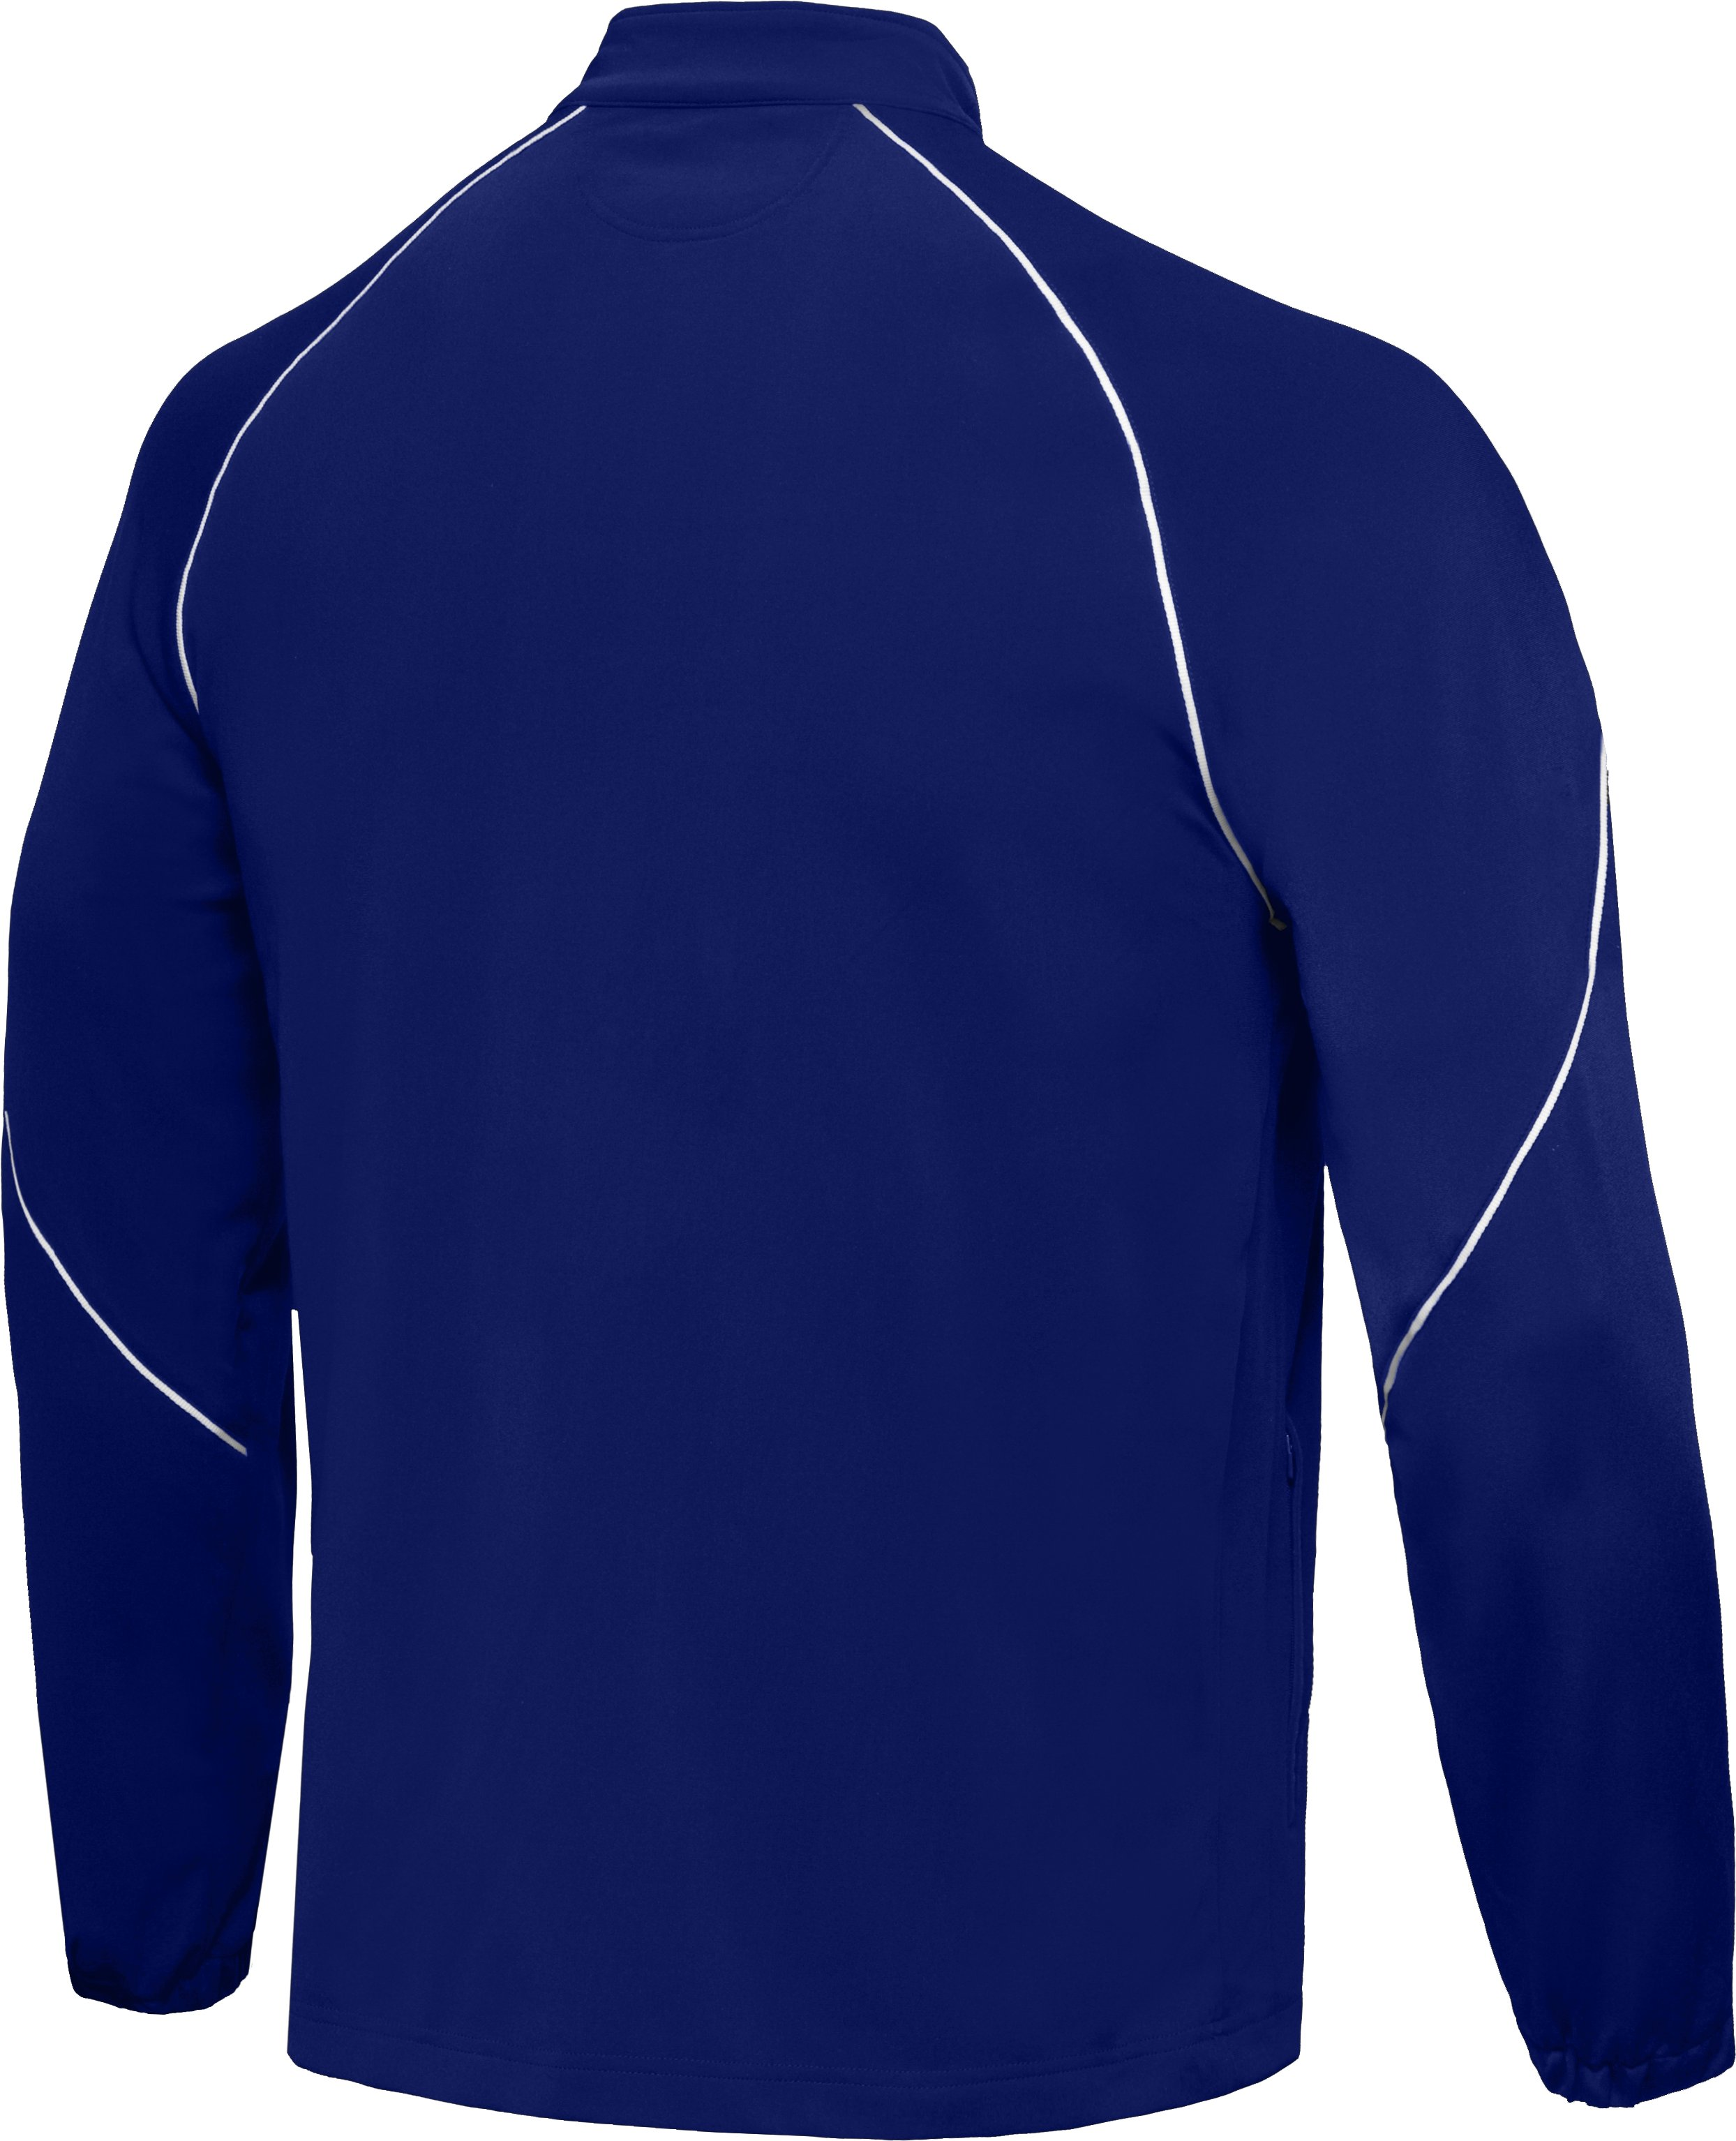 Men's Team Knit Warm-Up Jacket, Royal